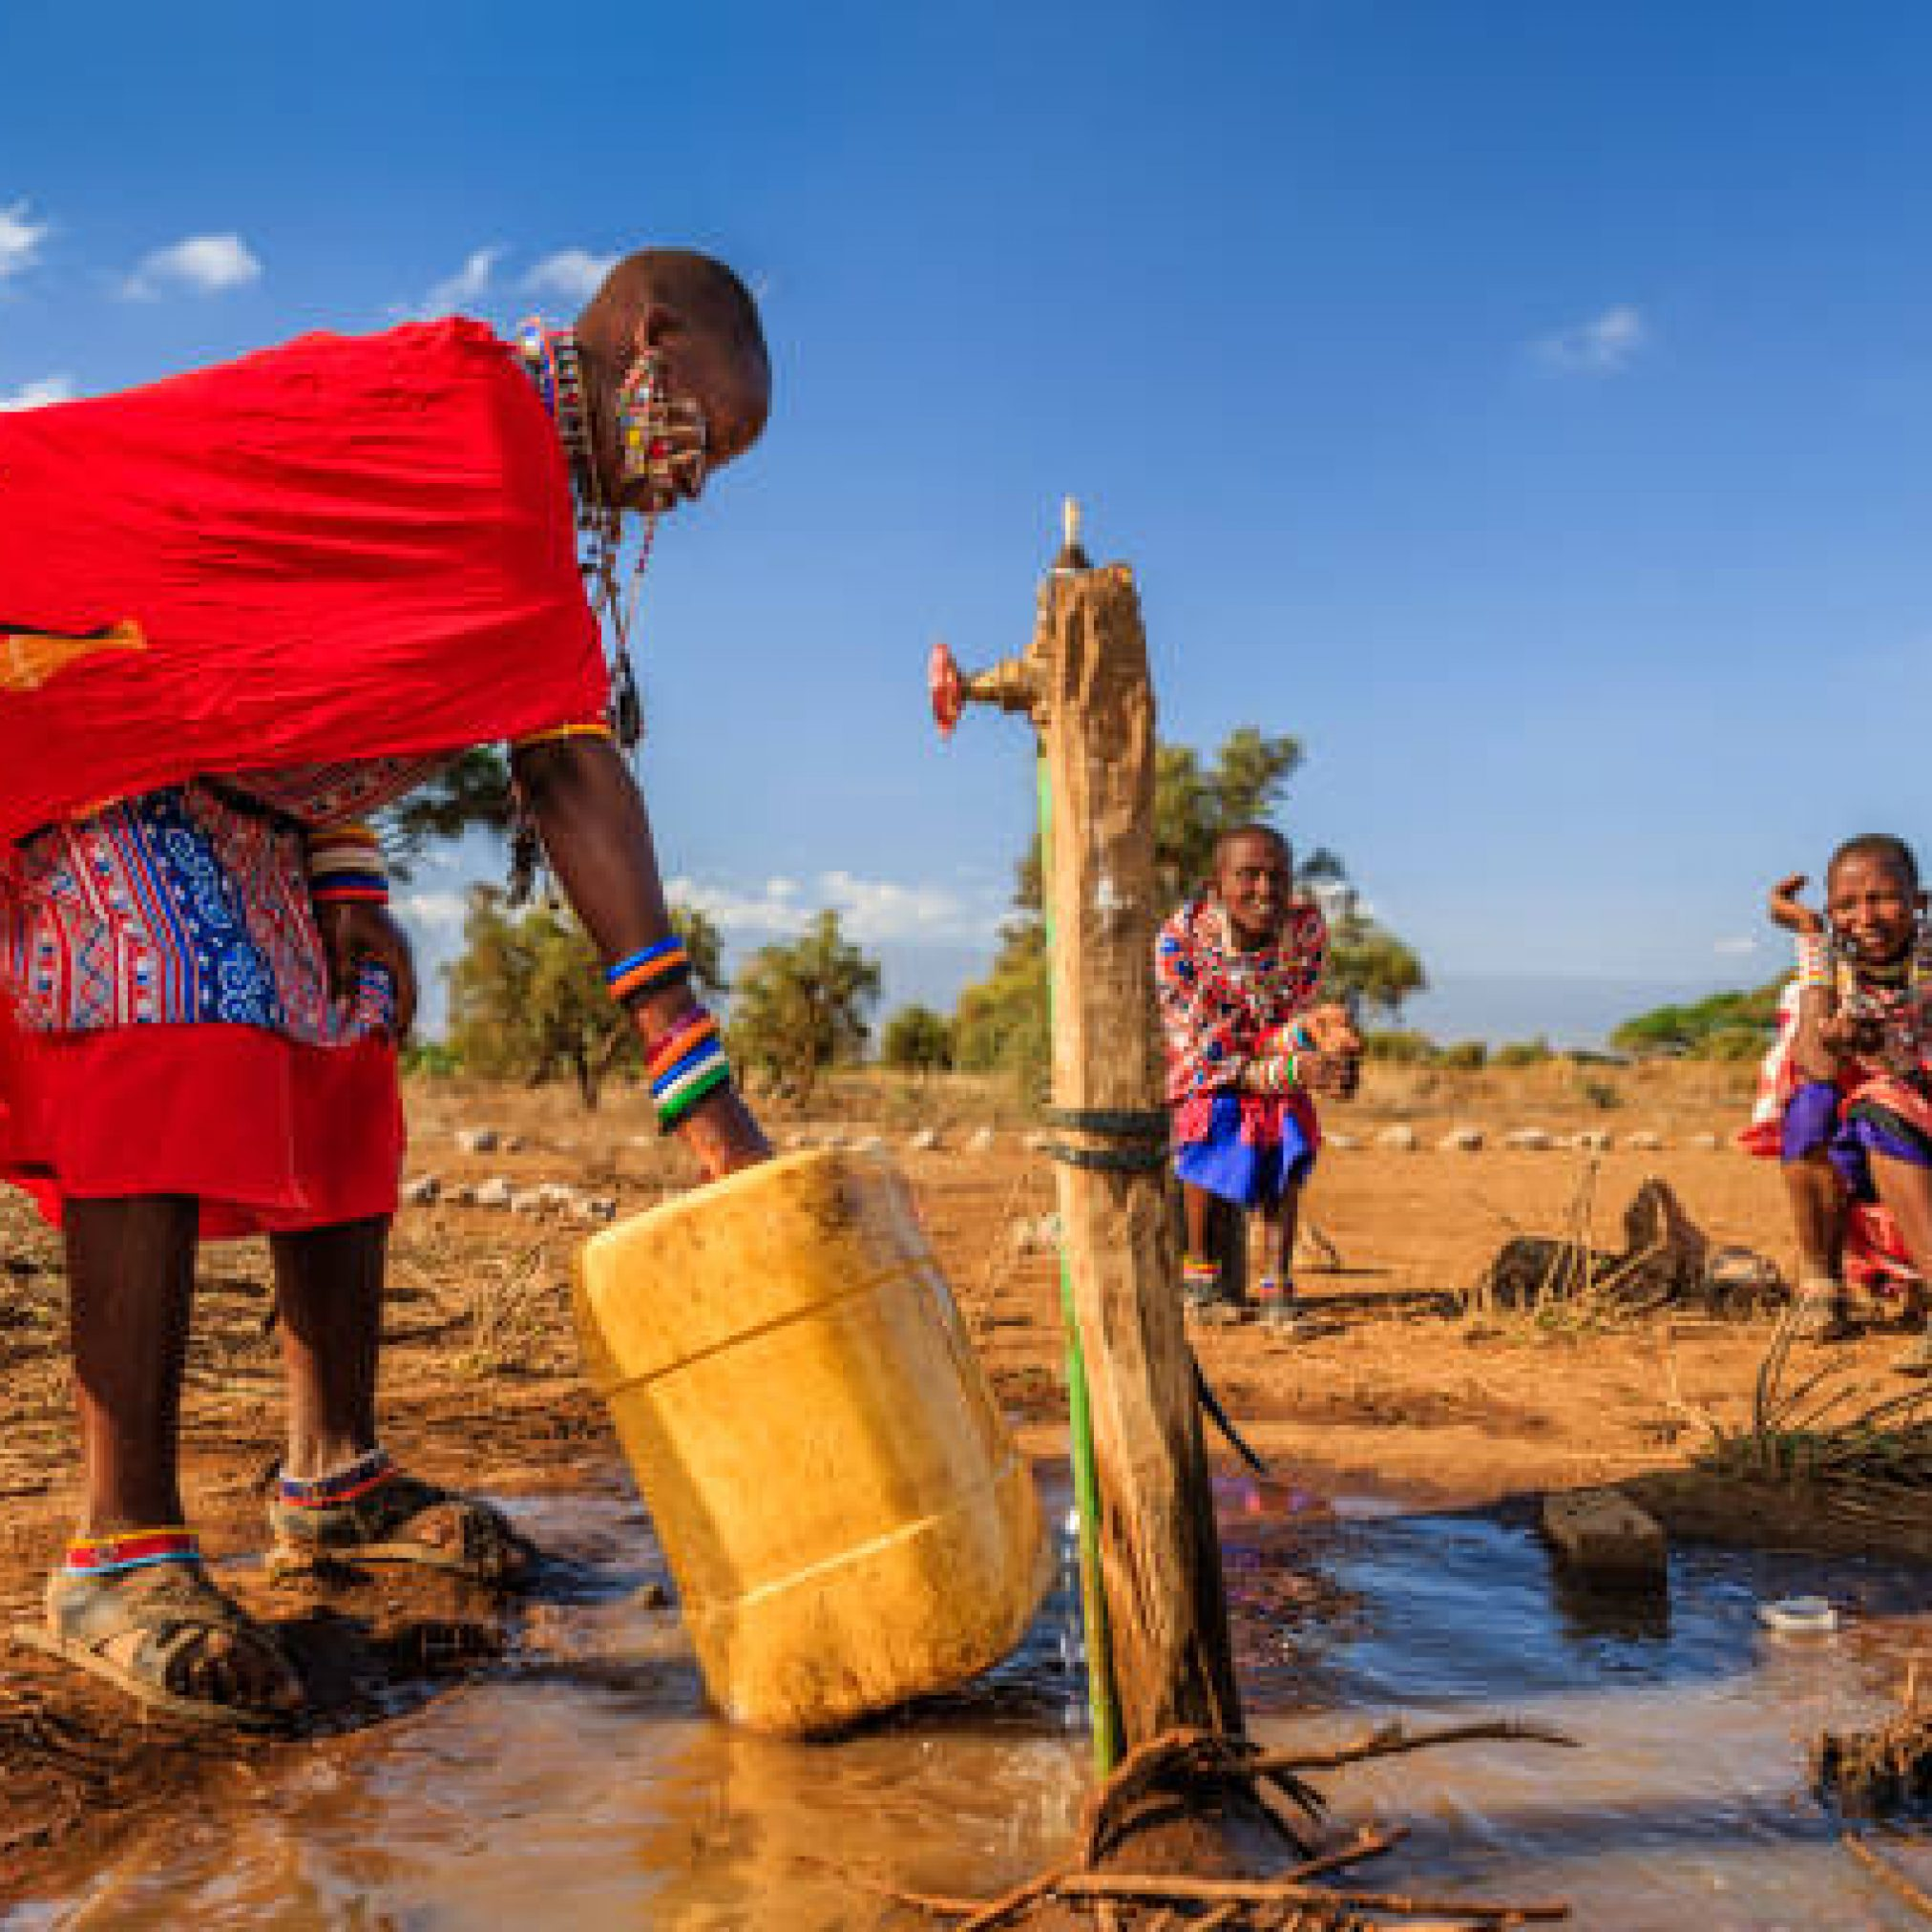 African woman from Maasai tribe collecting water to the tank, Kenya, Africa. When she finish filling the tank, she will carry water on her back to the village. African women and also children often walk long distances through the savanna to bring back containers of water. Some tourist camps cooperating with nearby villages and allow local people to use their water. Maasai tribe inhabiting southern Kenya and northern Tanzania, and they are related to the Samburu.